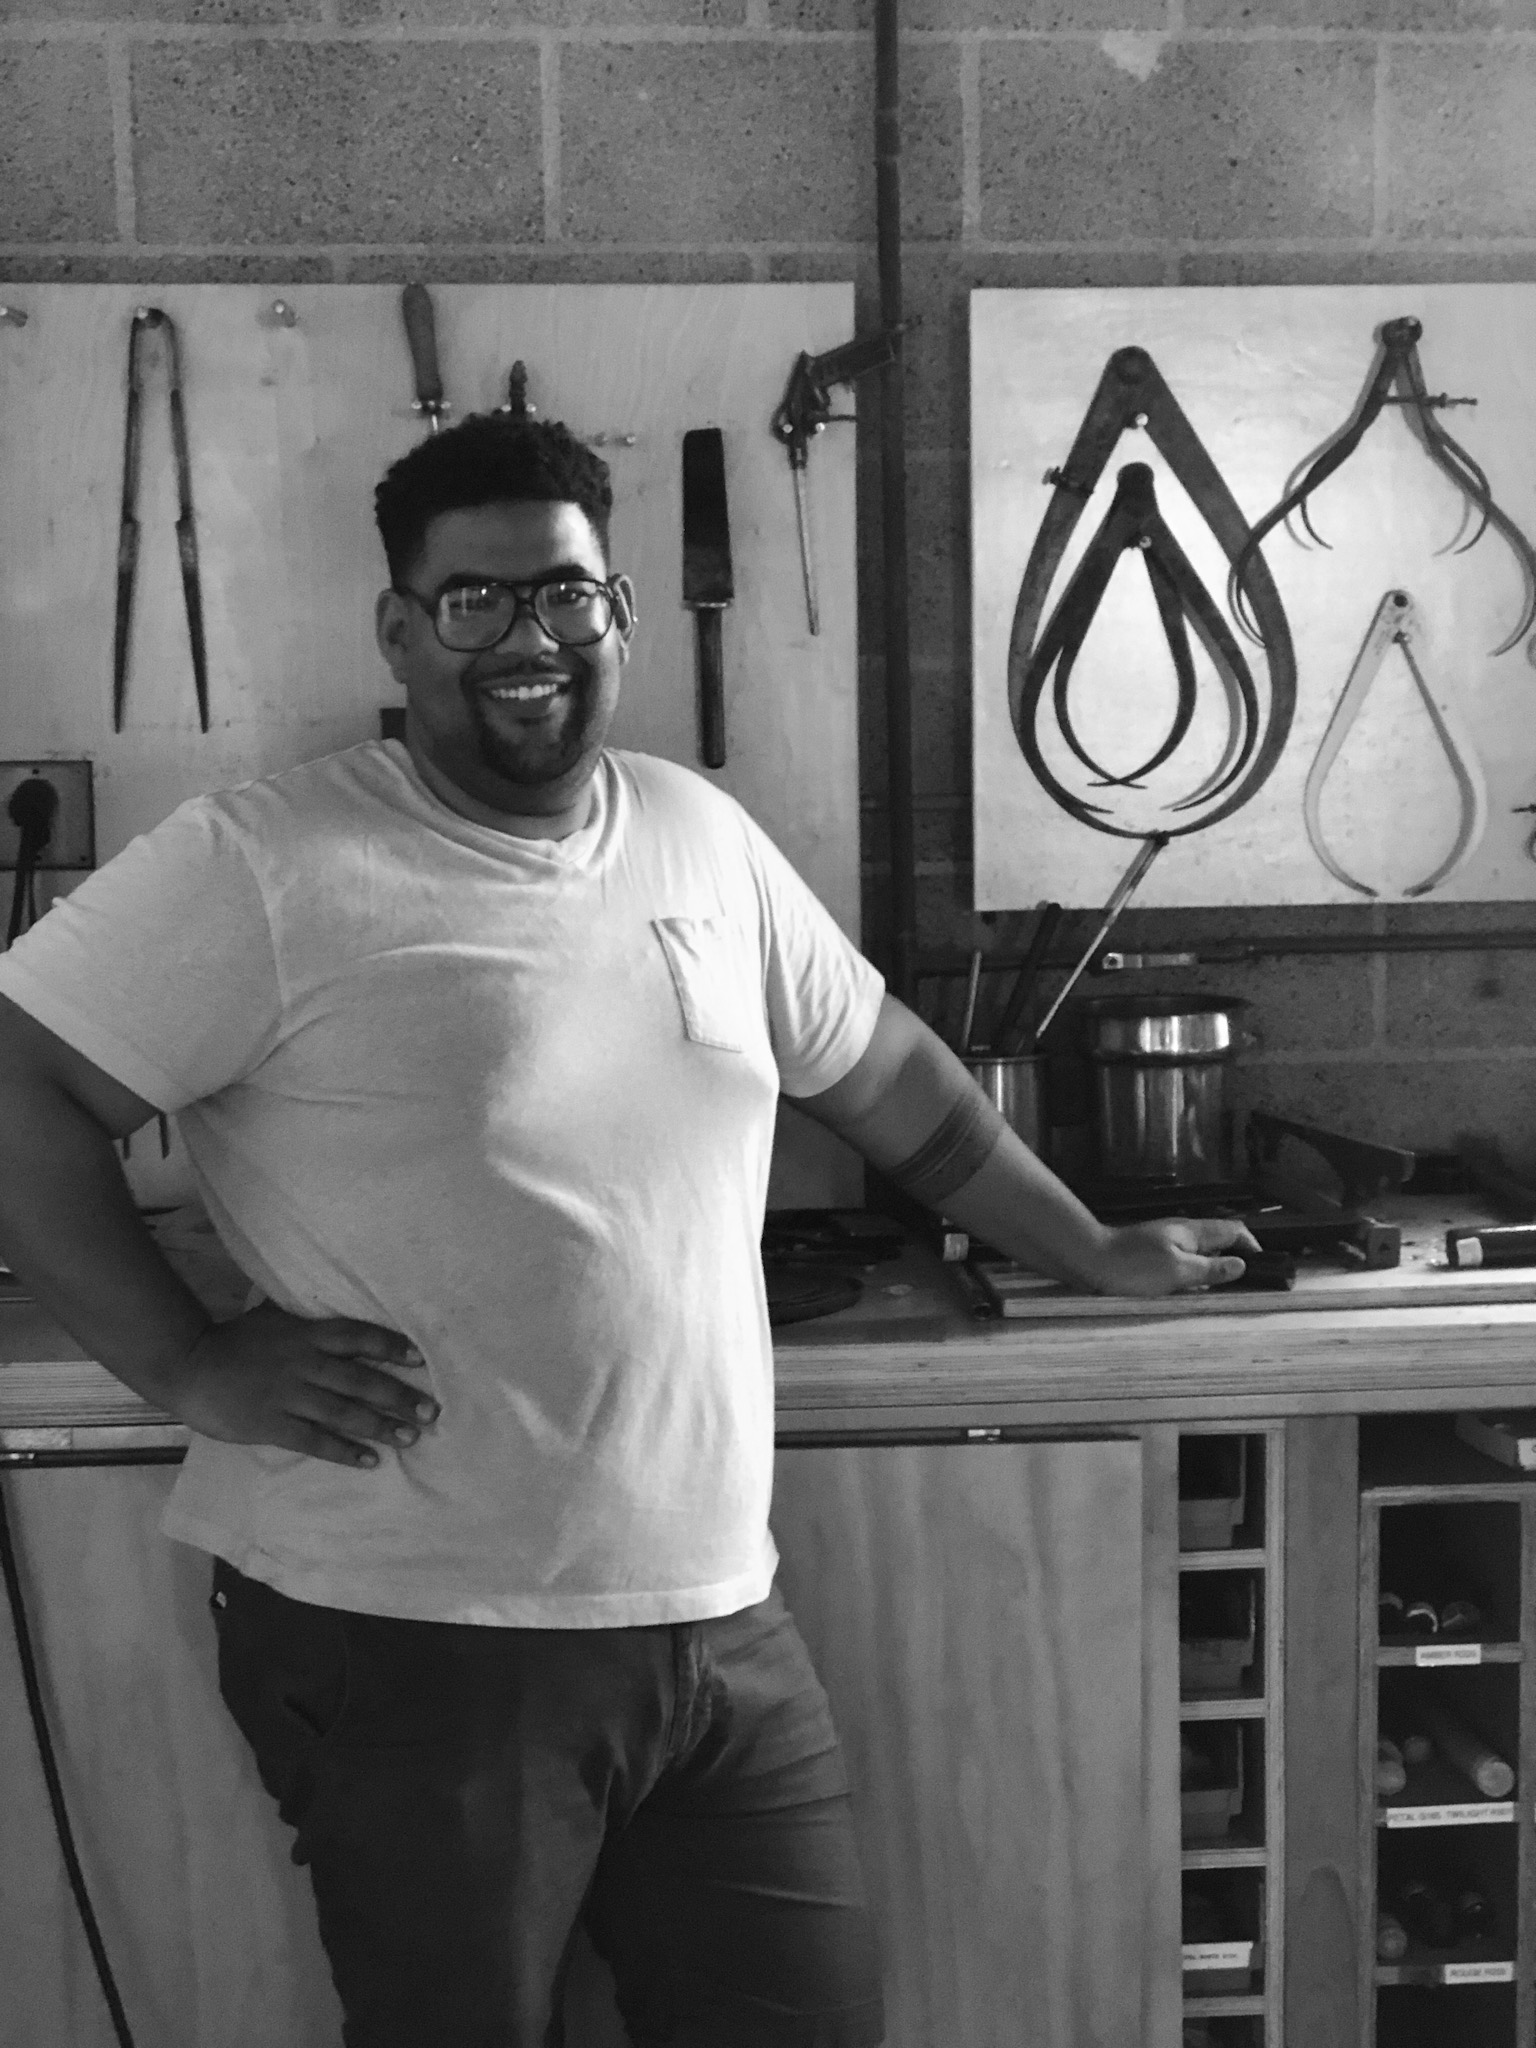 Corey Pemberton - Brand new to Los Angeles, Corey brings over ten years of experience in fine arts and glass from the East Coast to our sunny spot here in LA. A recent Core Fellow at Penland School of Crafts and Artist in Residence at the Pittsburgh Glass Center, Corey looks forward to sharing his talents with the local community.